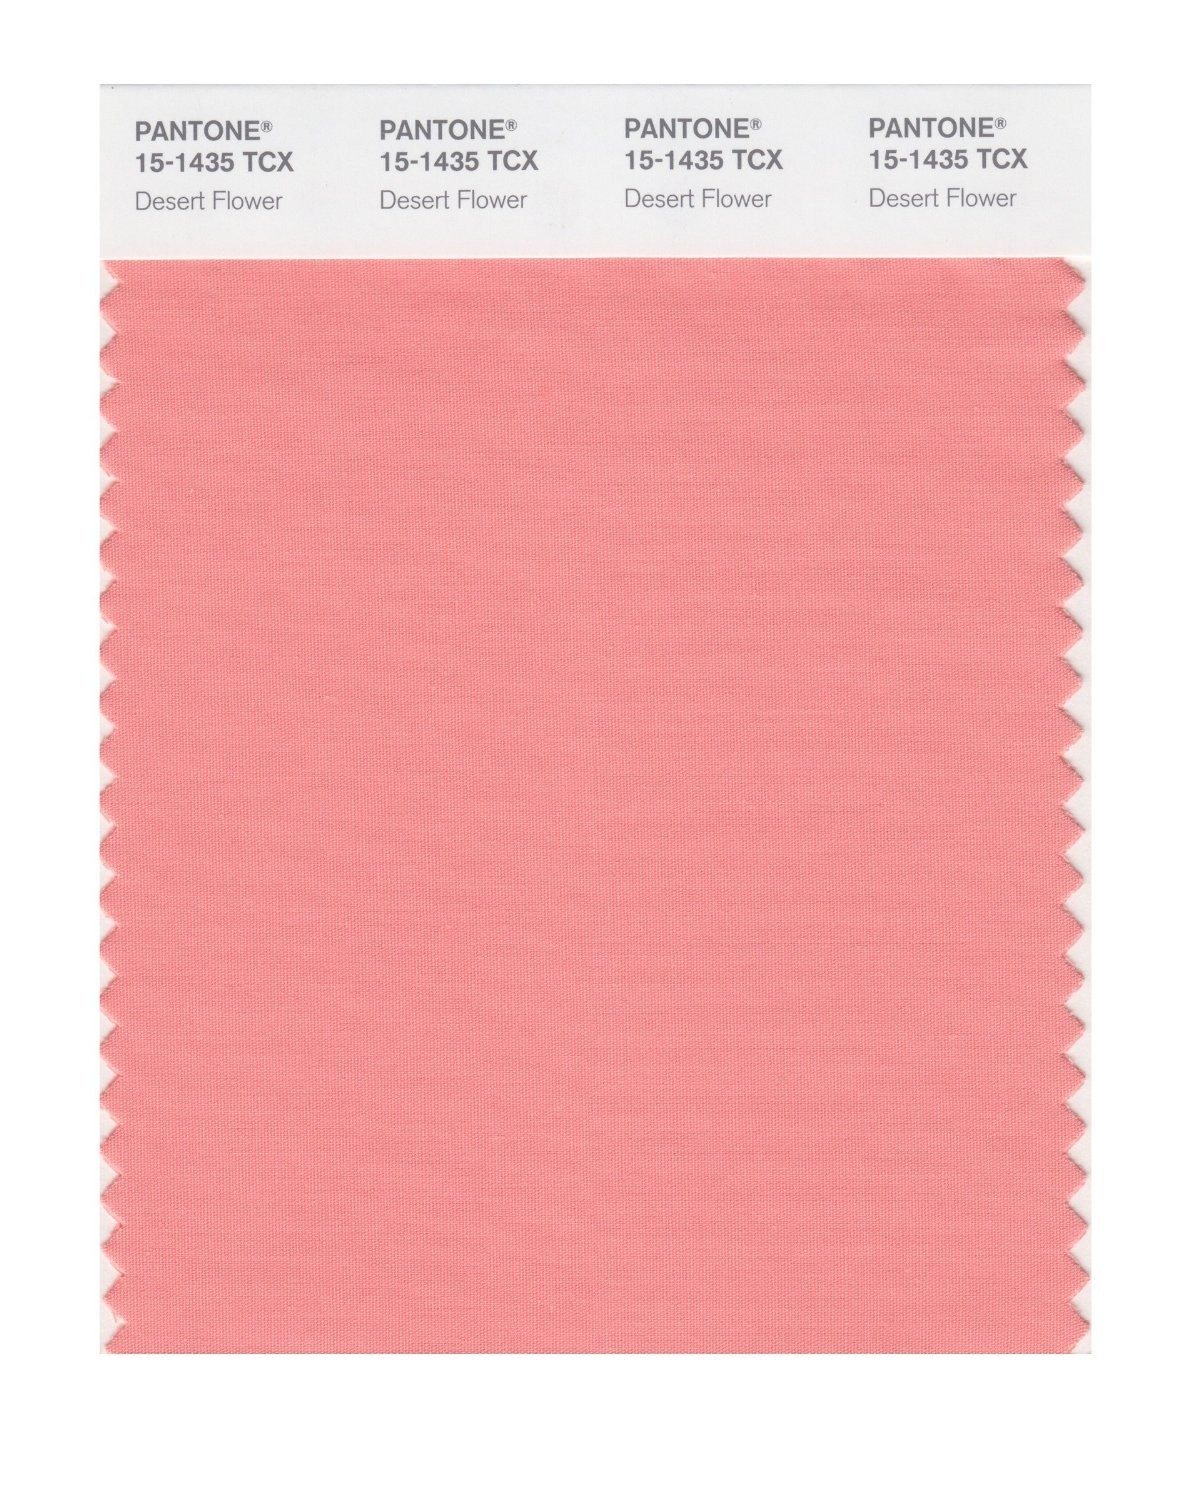 Pantone 15-1435 TCX Swatch Card Desert Flower